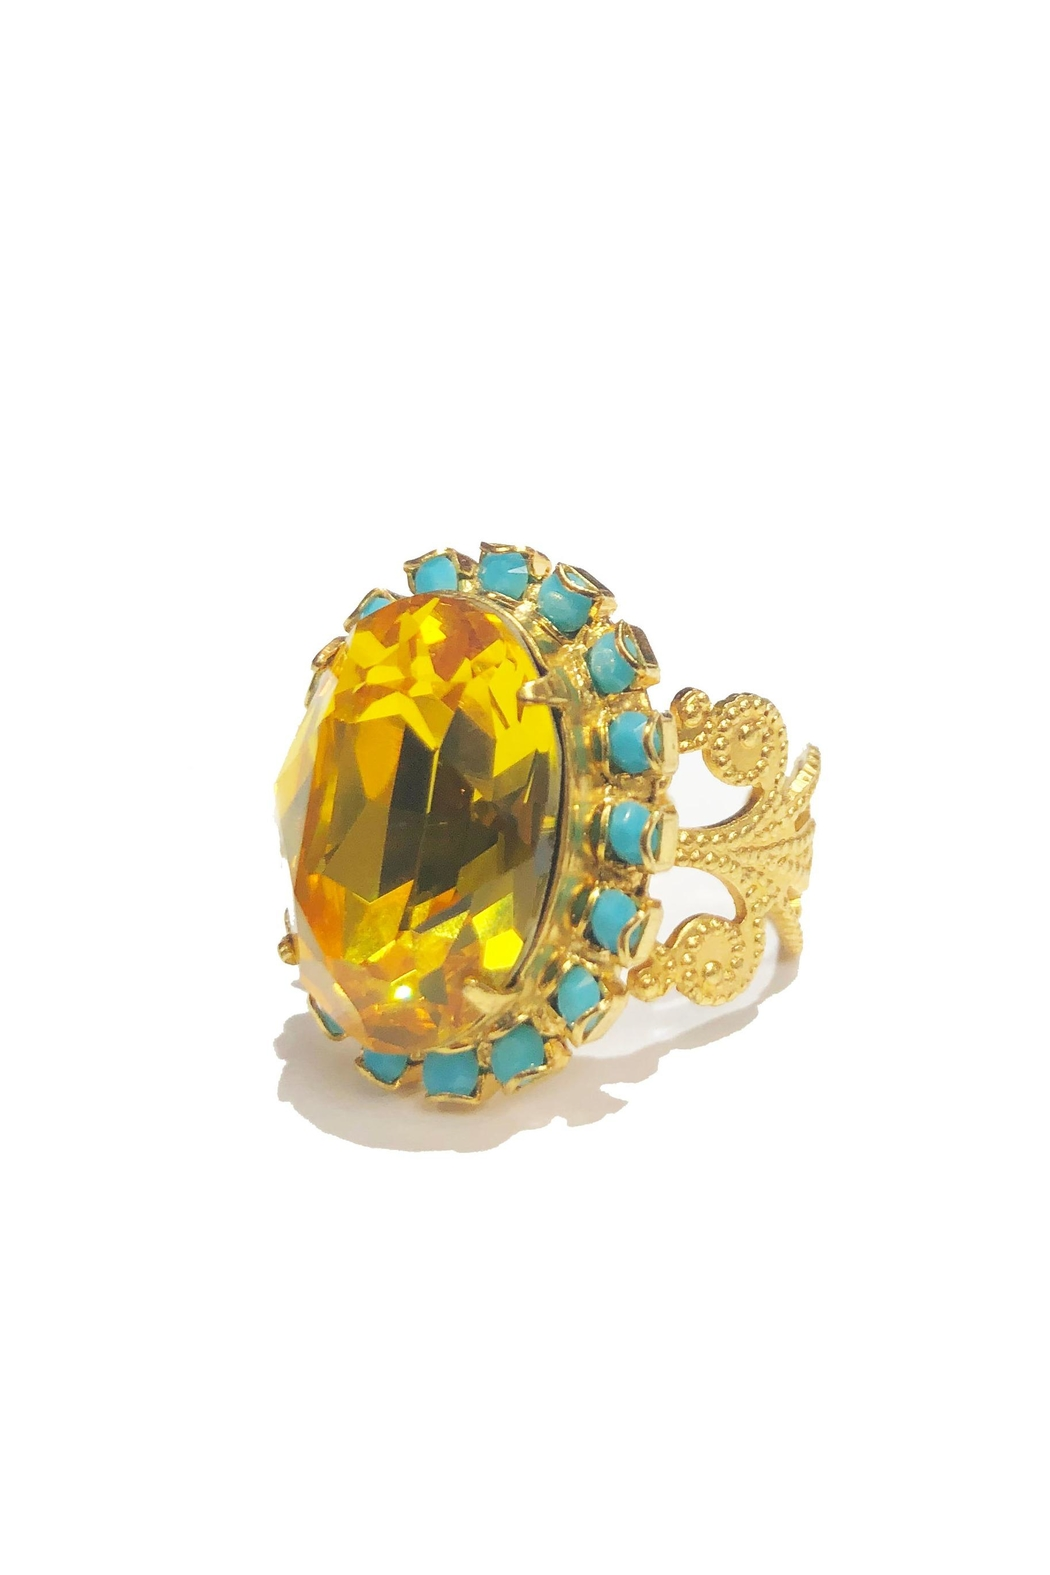 Lets Accessorize Golden Sun Ring from New York by Let's